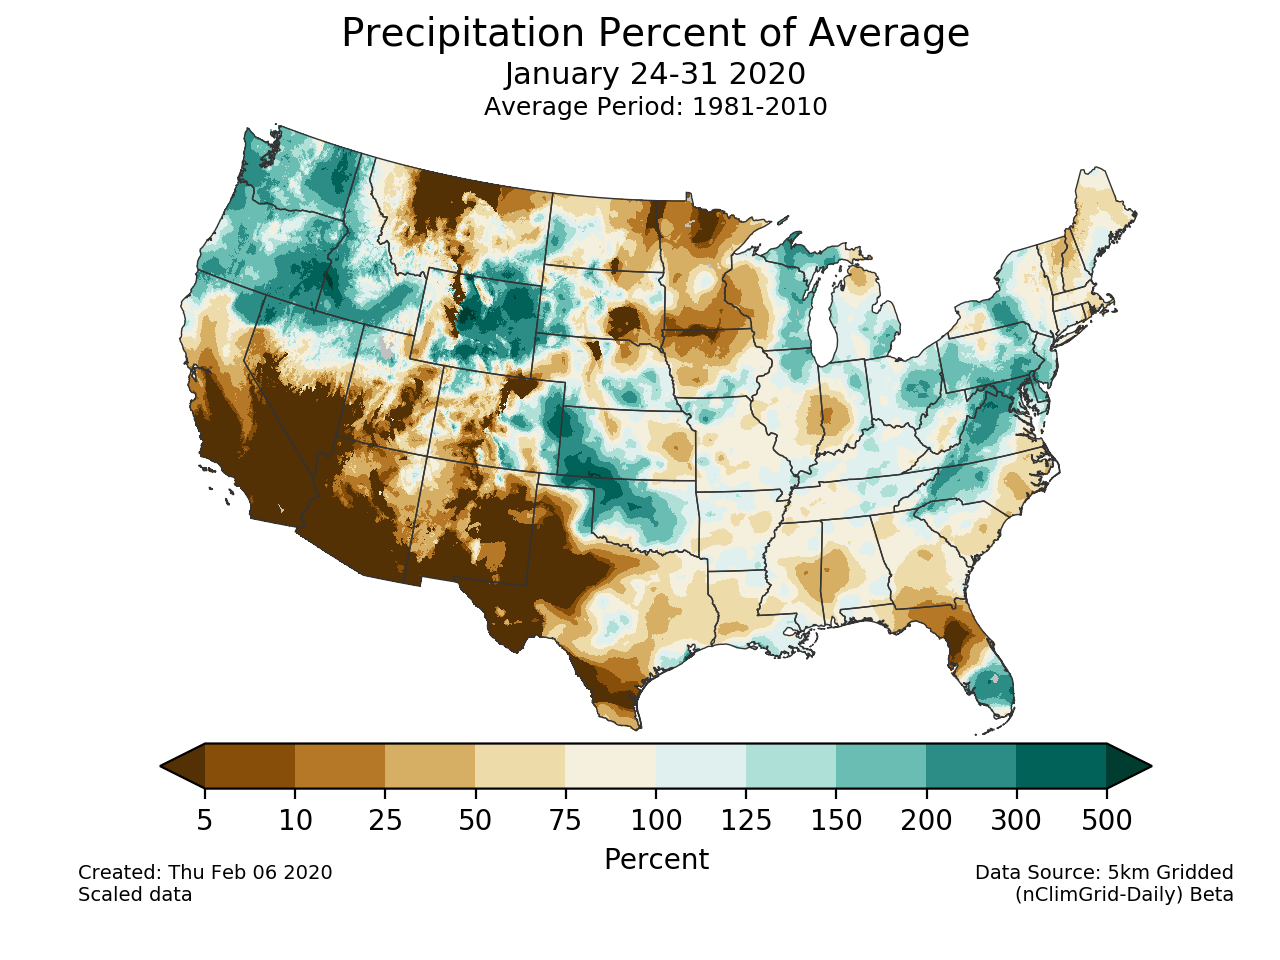 Precipitation anomalies (percent of normal) for the CONUS for January 24-31 2020